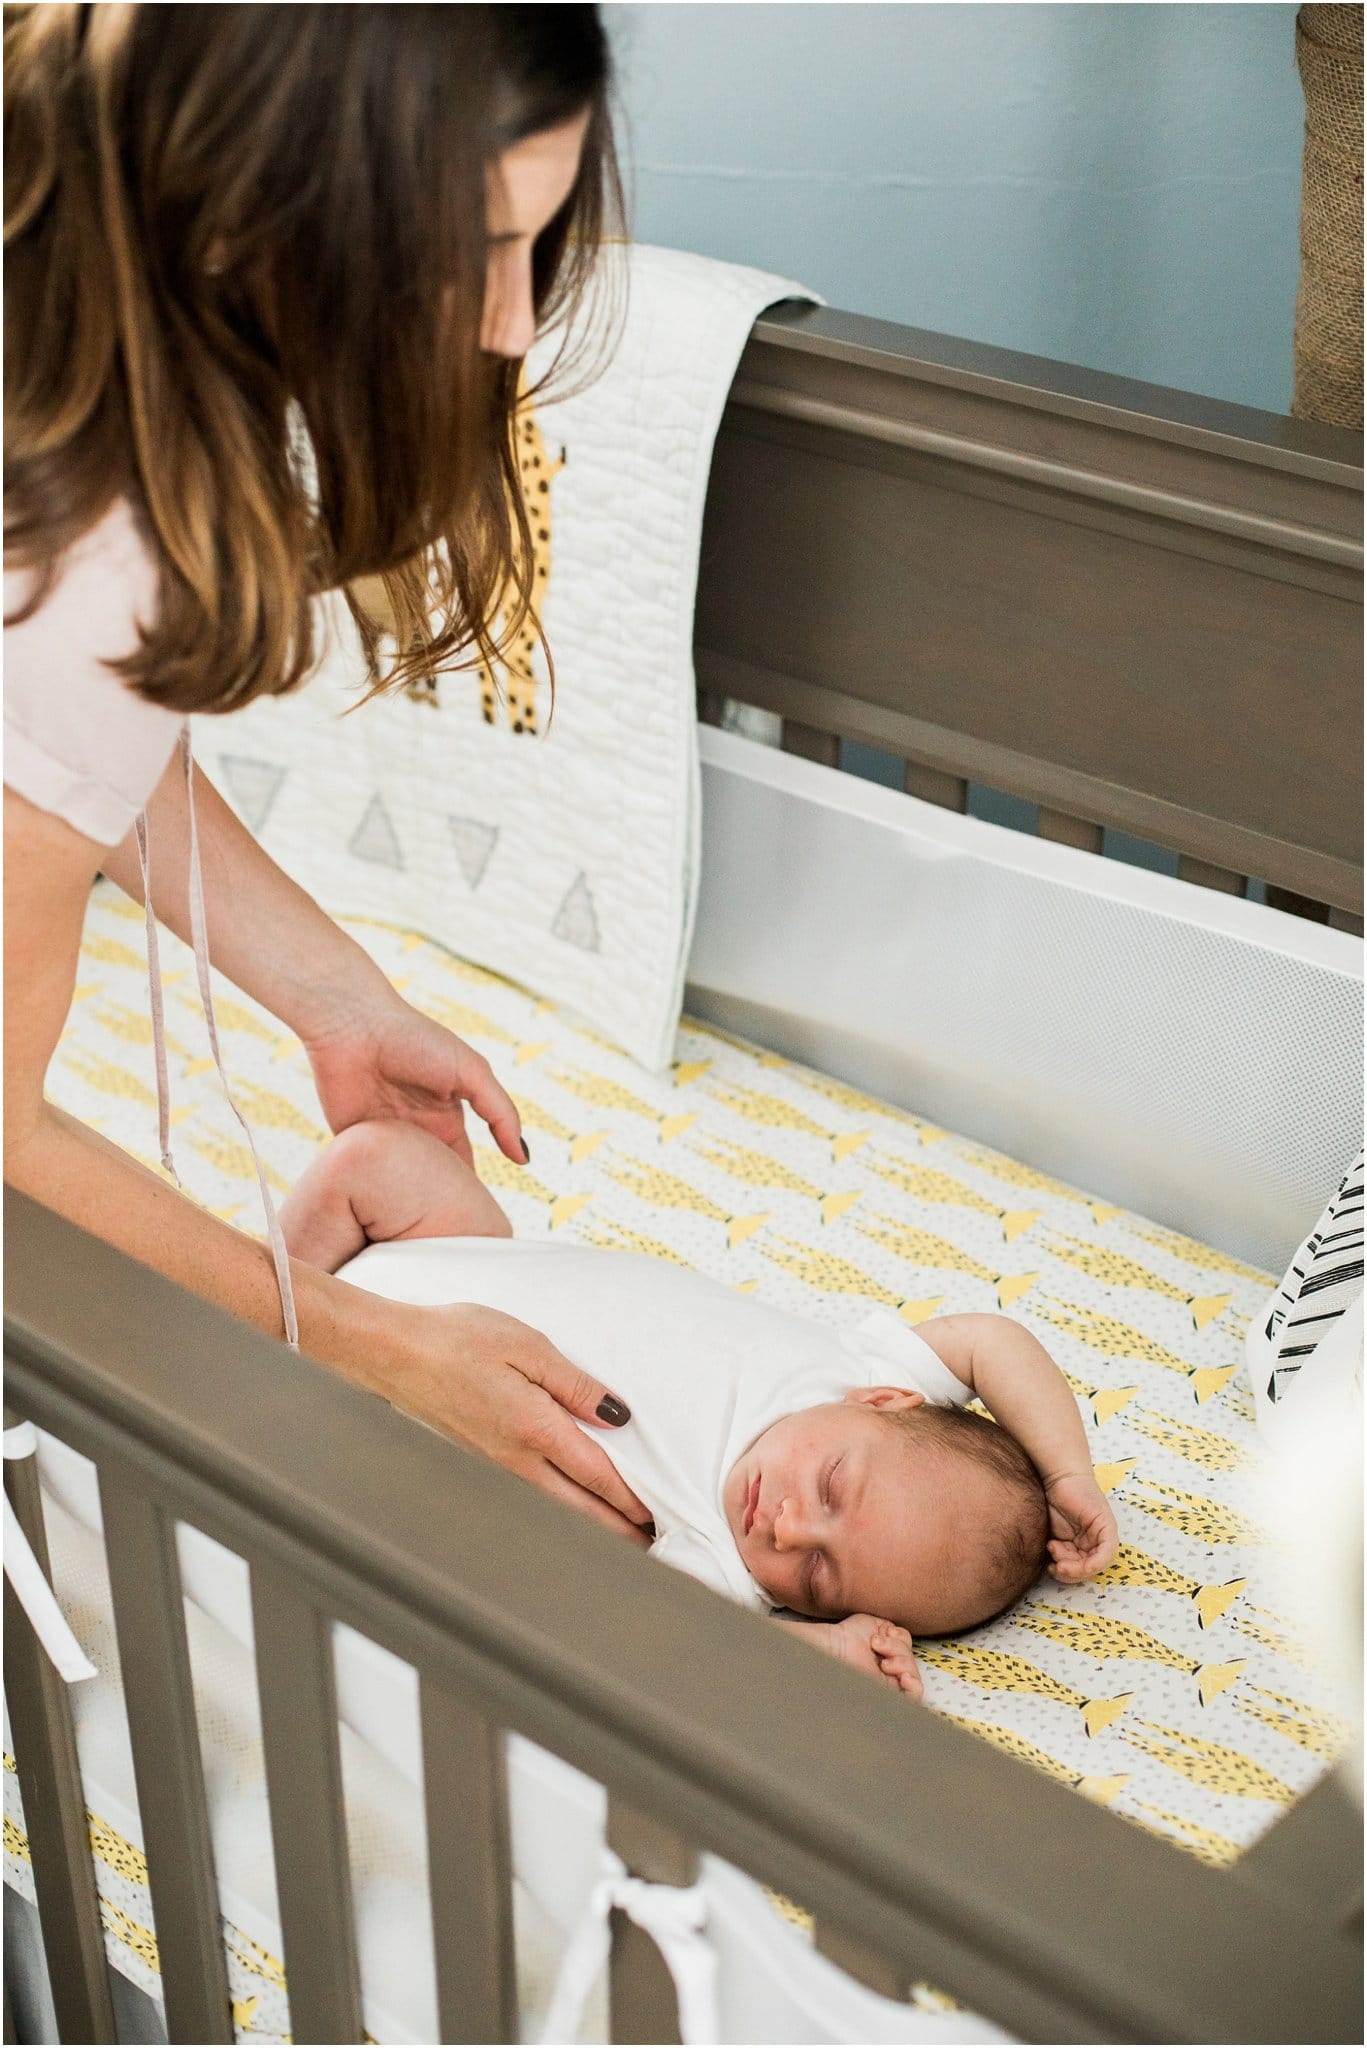 mother putting sleeping baby into crib